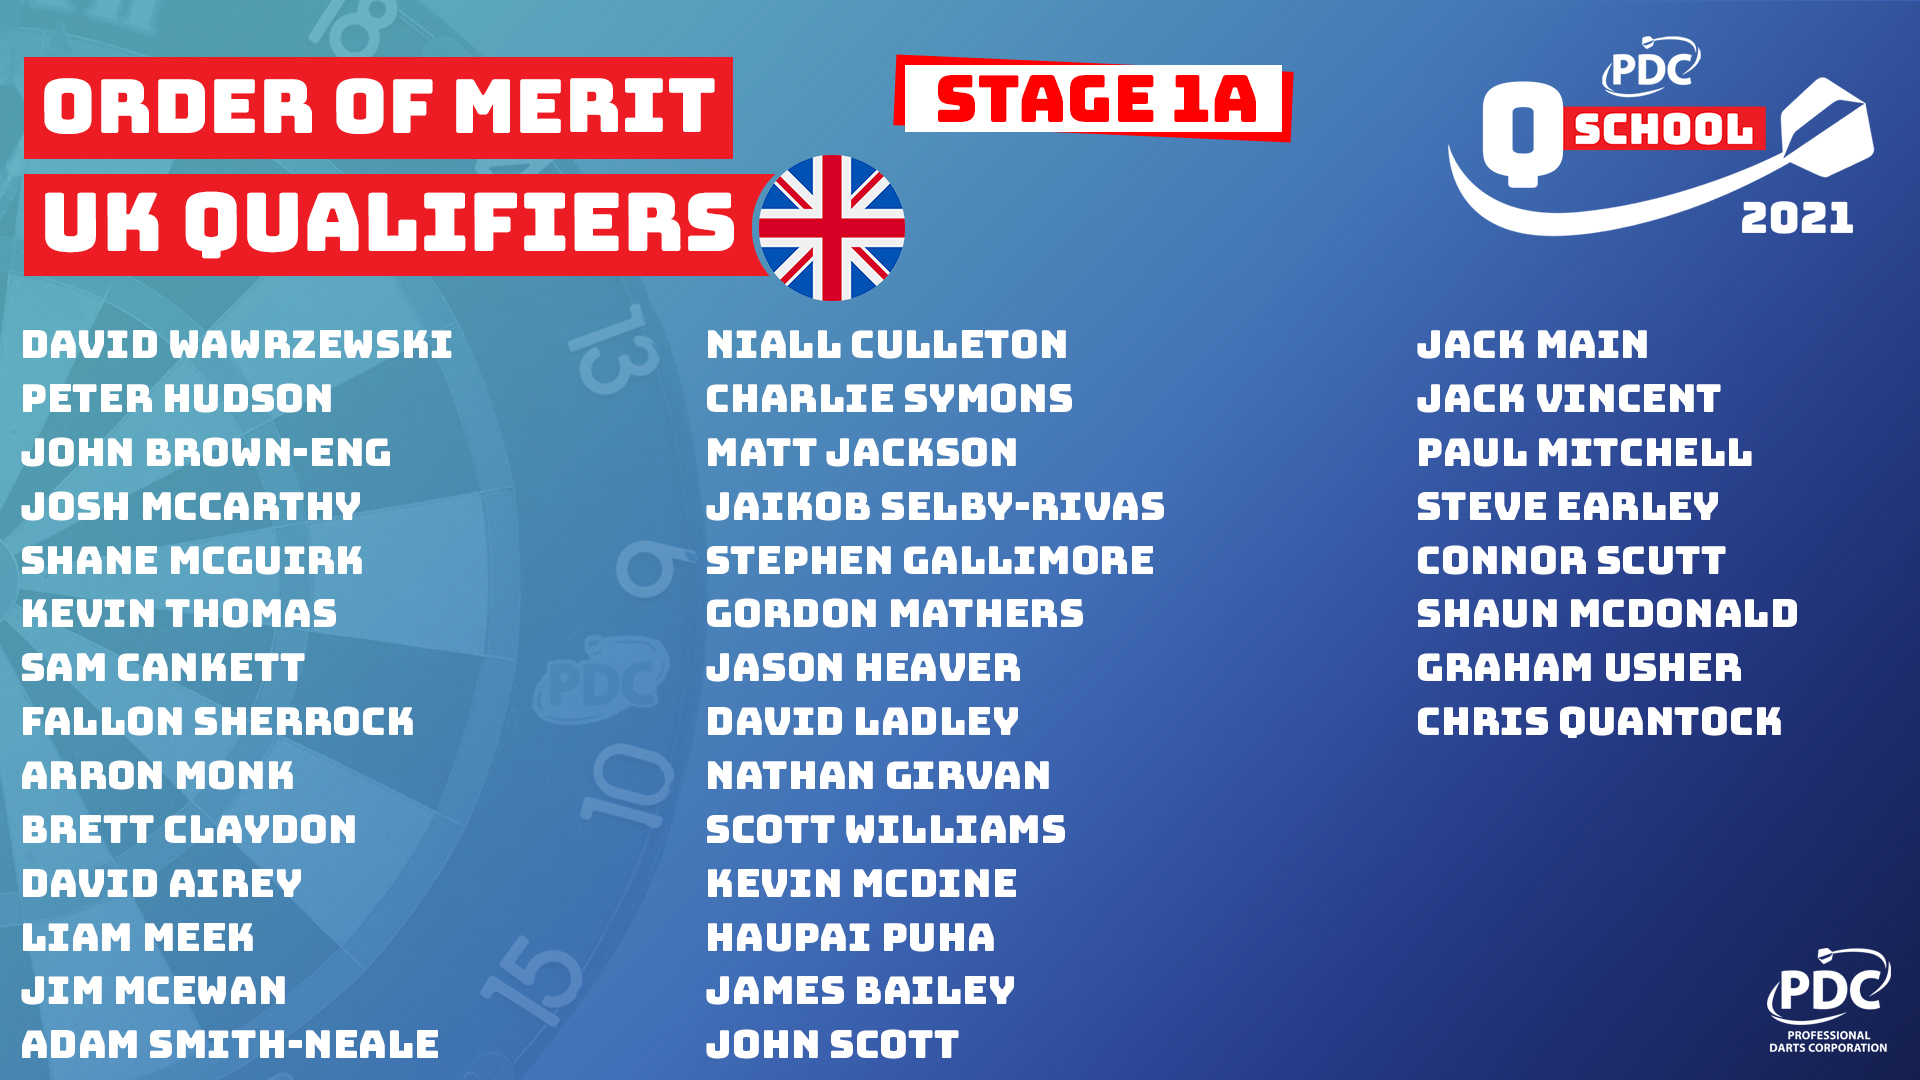 UK Stage 1A Order of Merit